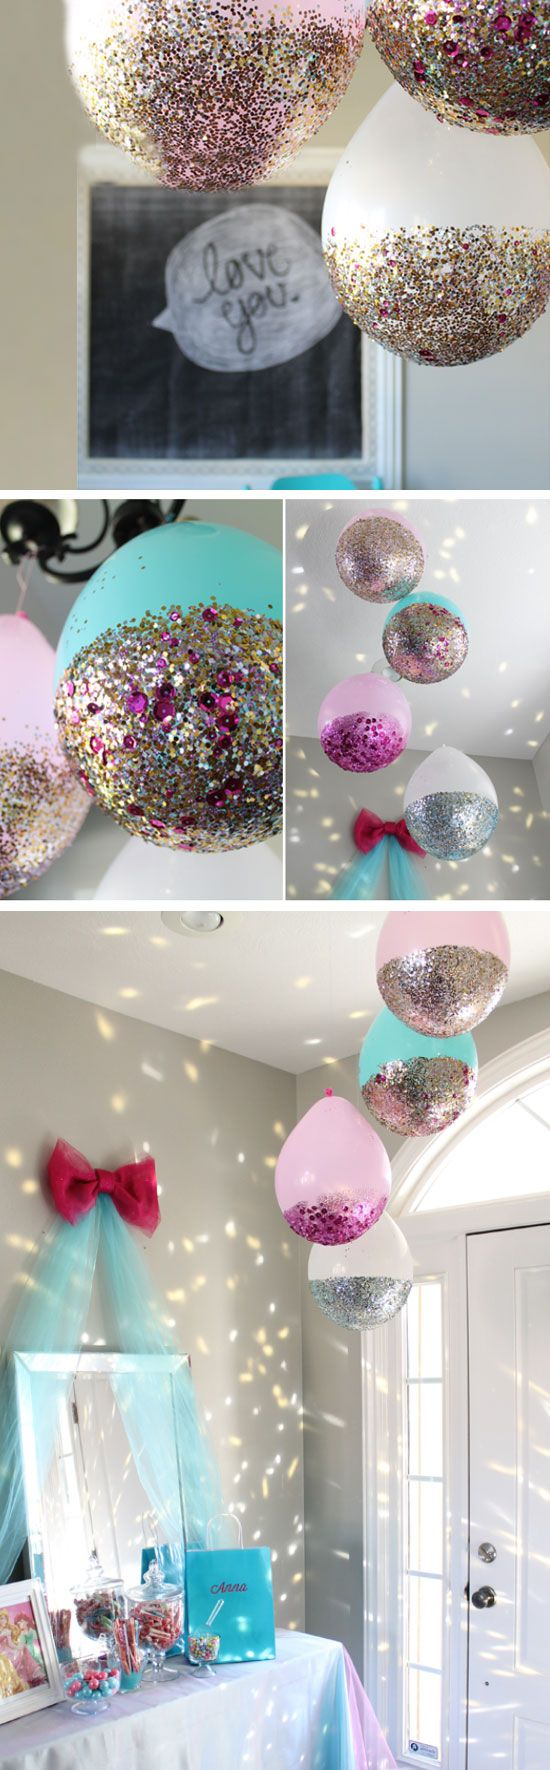 Last minute diy wedding decorations  DIY Glitter Balloons  Click Pick for  Last Minute New Years Eve